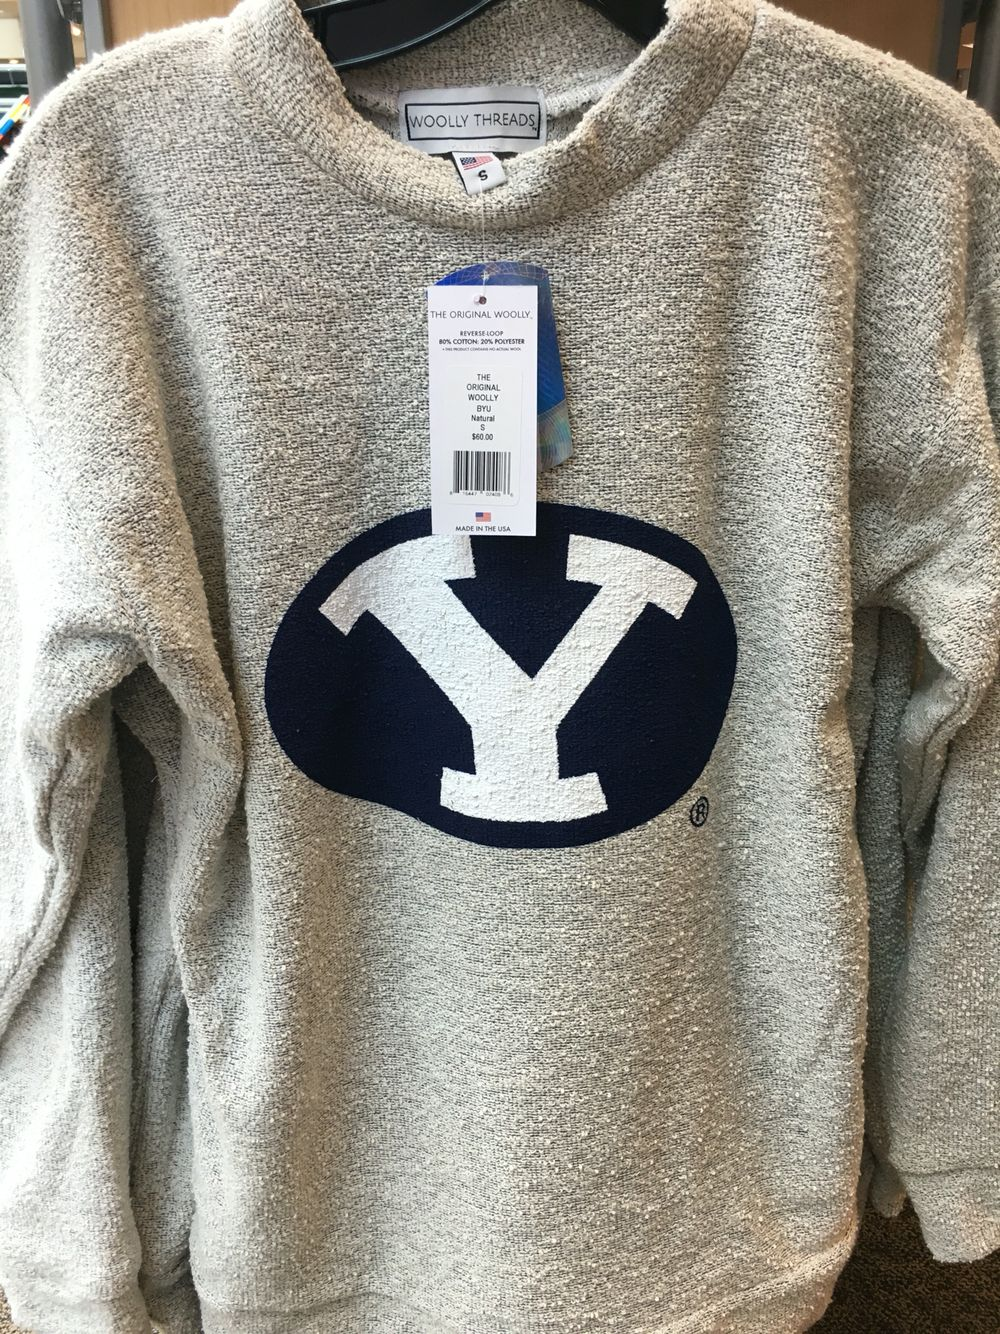 30fc8091c BYU Sweatshirt - Order a plain Woolly on their website and specify in the  notes that